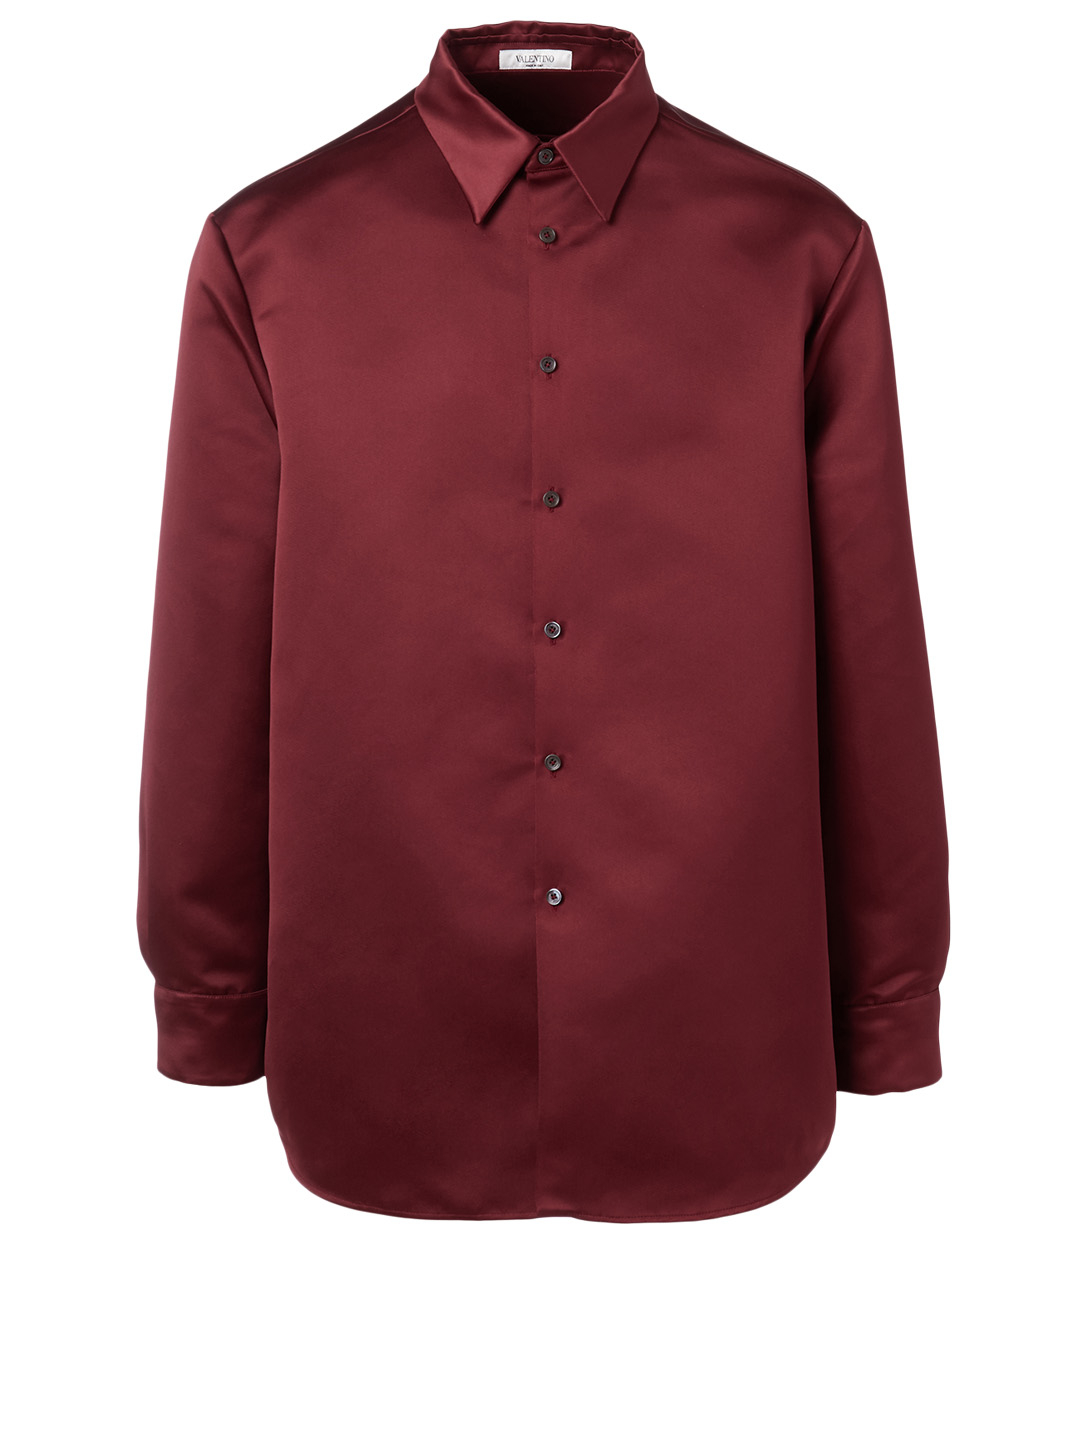 VALENTINO Duchesse Shirt Men's Red